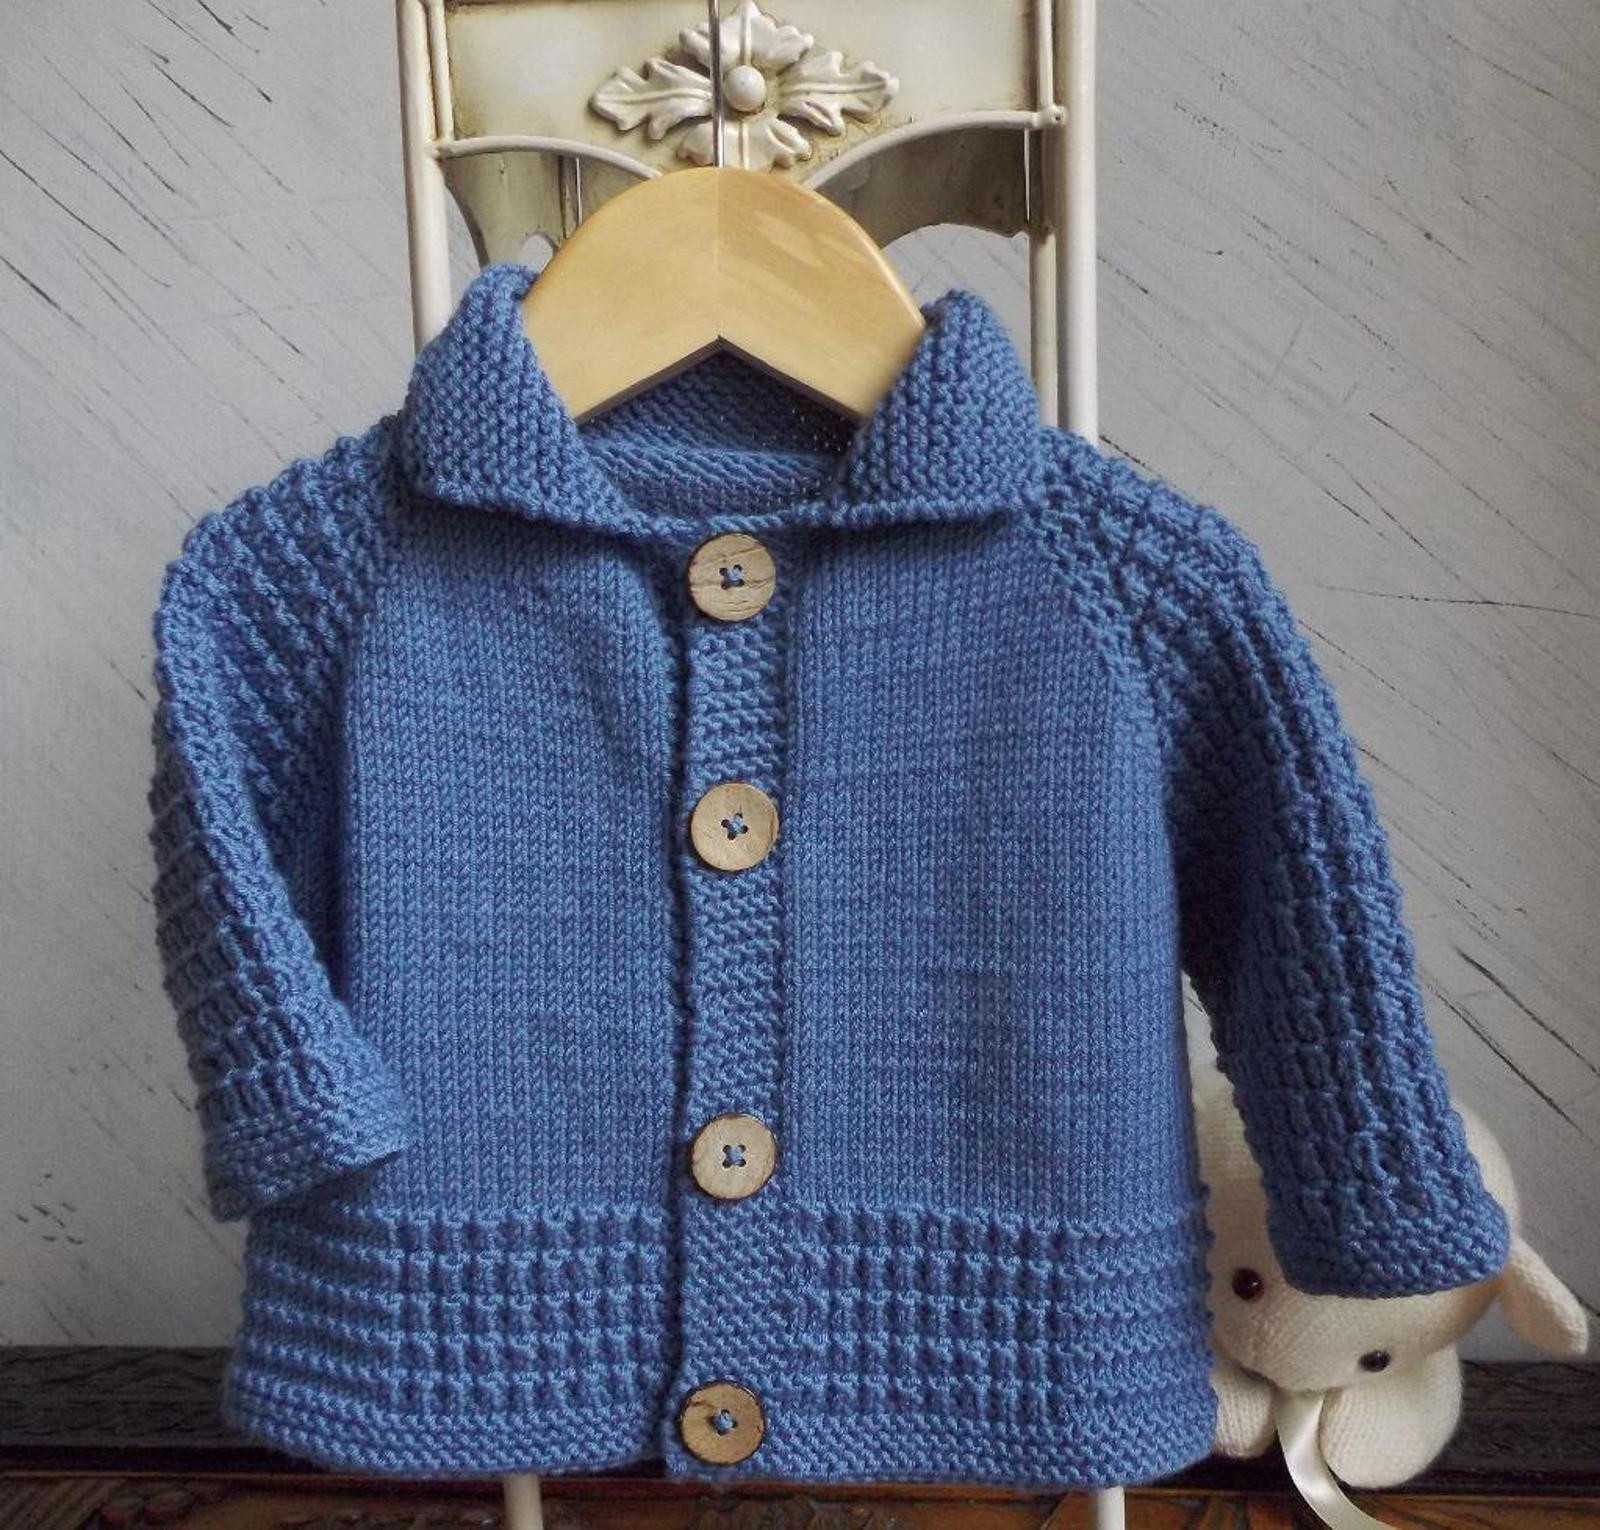 Baby Cardigan Knitting Pattern Lovely top Down Baby Sweater Knitting Patterns Easier to Adjust Of Adorable 48 Pics Baby Cardigan Knitting Pattern